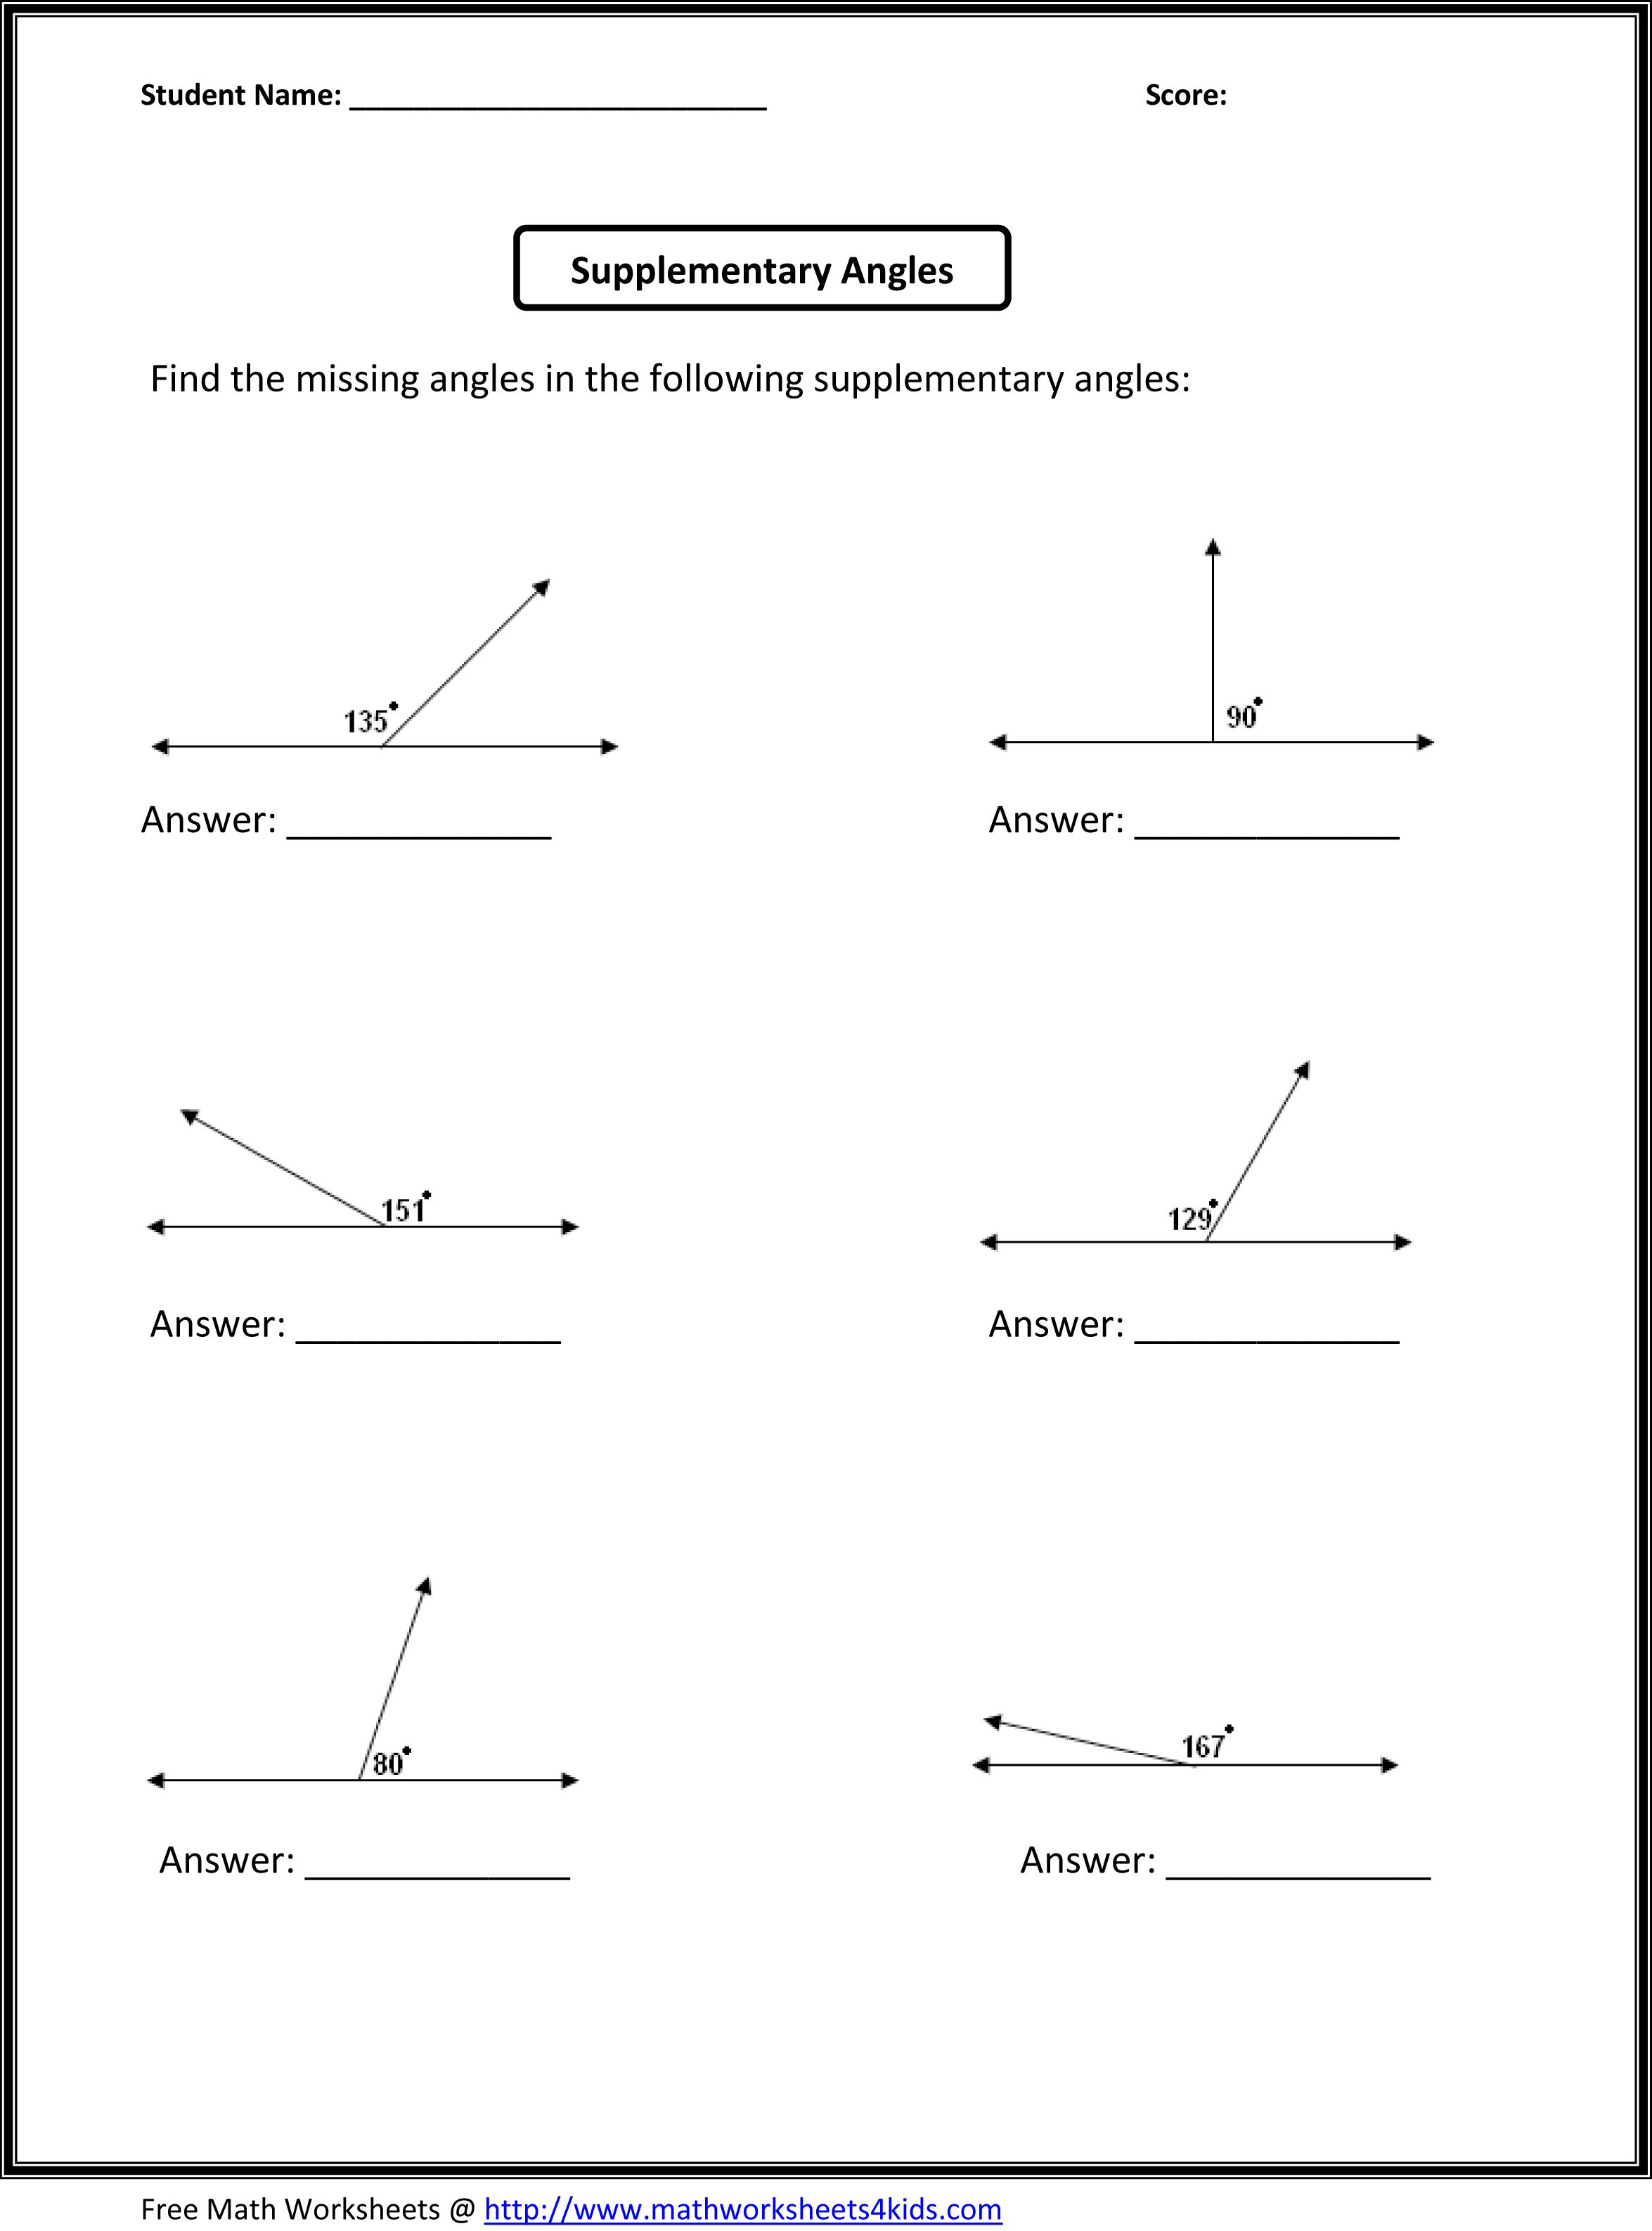 math worksheet : 1000 images about math worksheets on pinterest  addition  : Free Printable Math Worksheets For 8th Grade